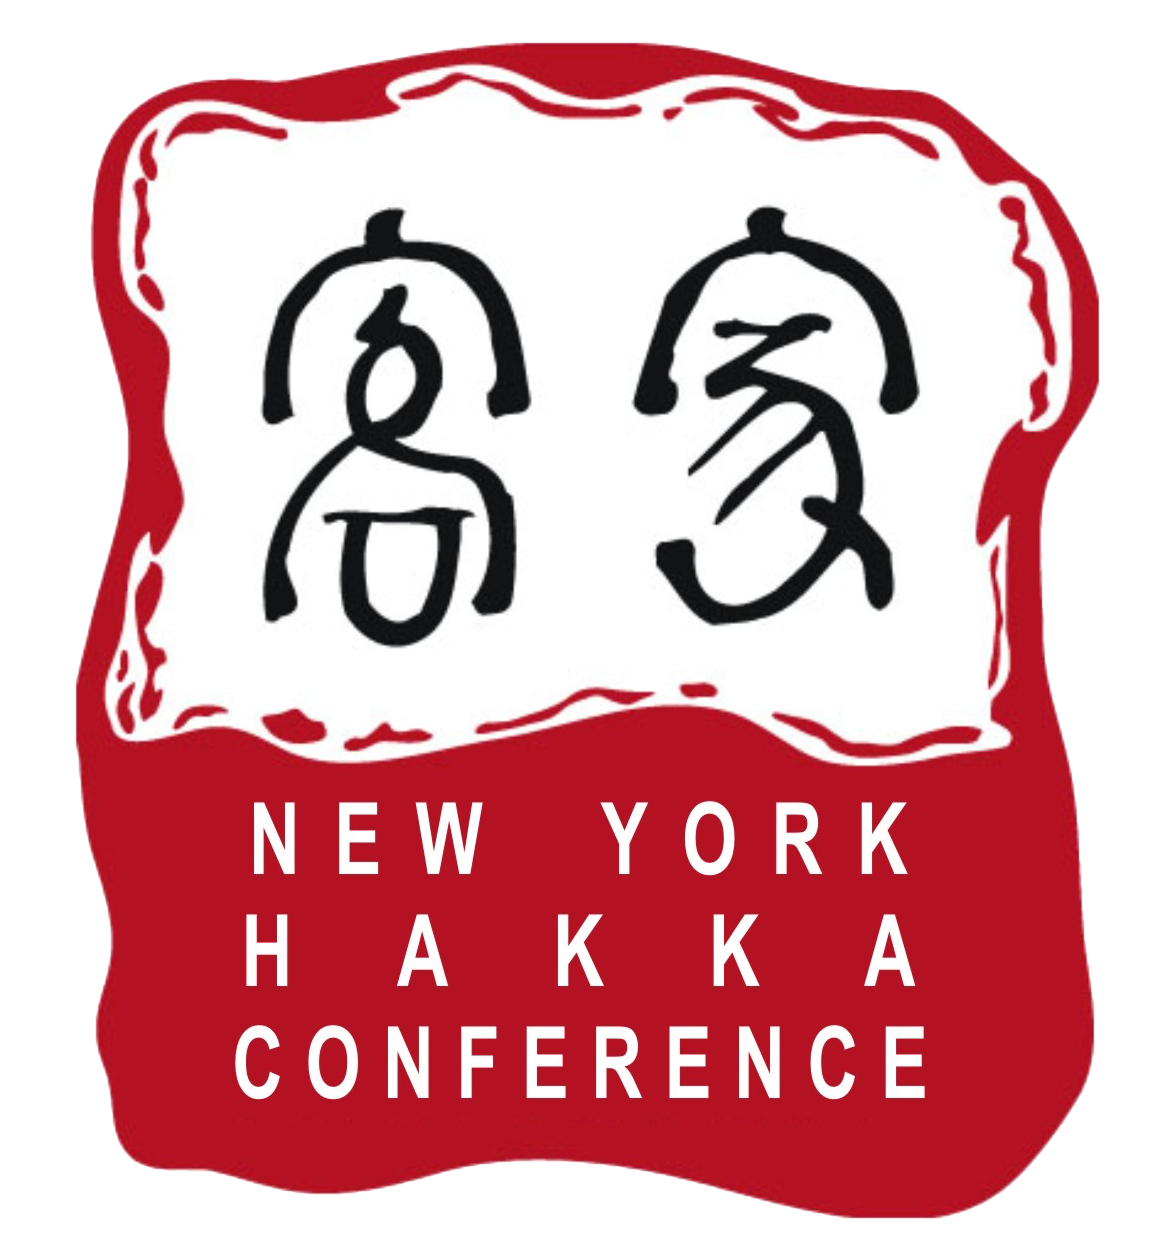 NEW YORK HAKKA CONFERENCE 2018